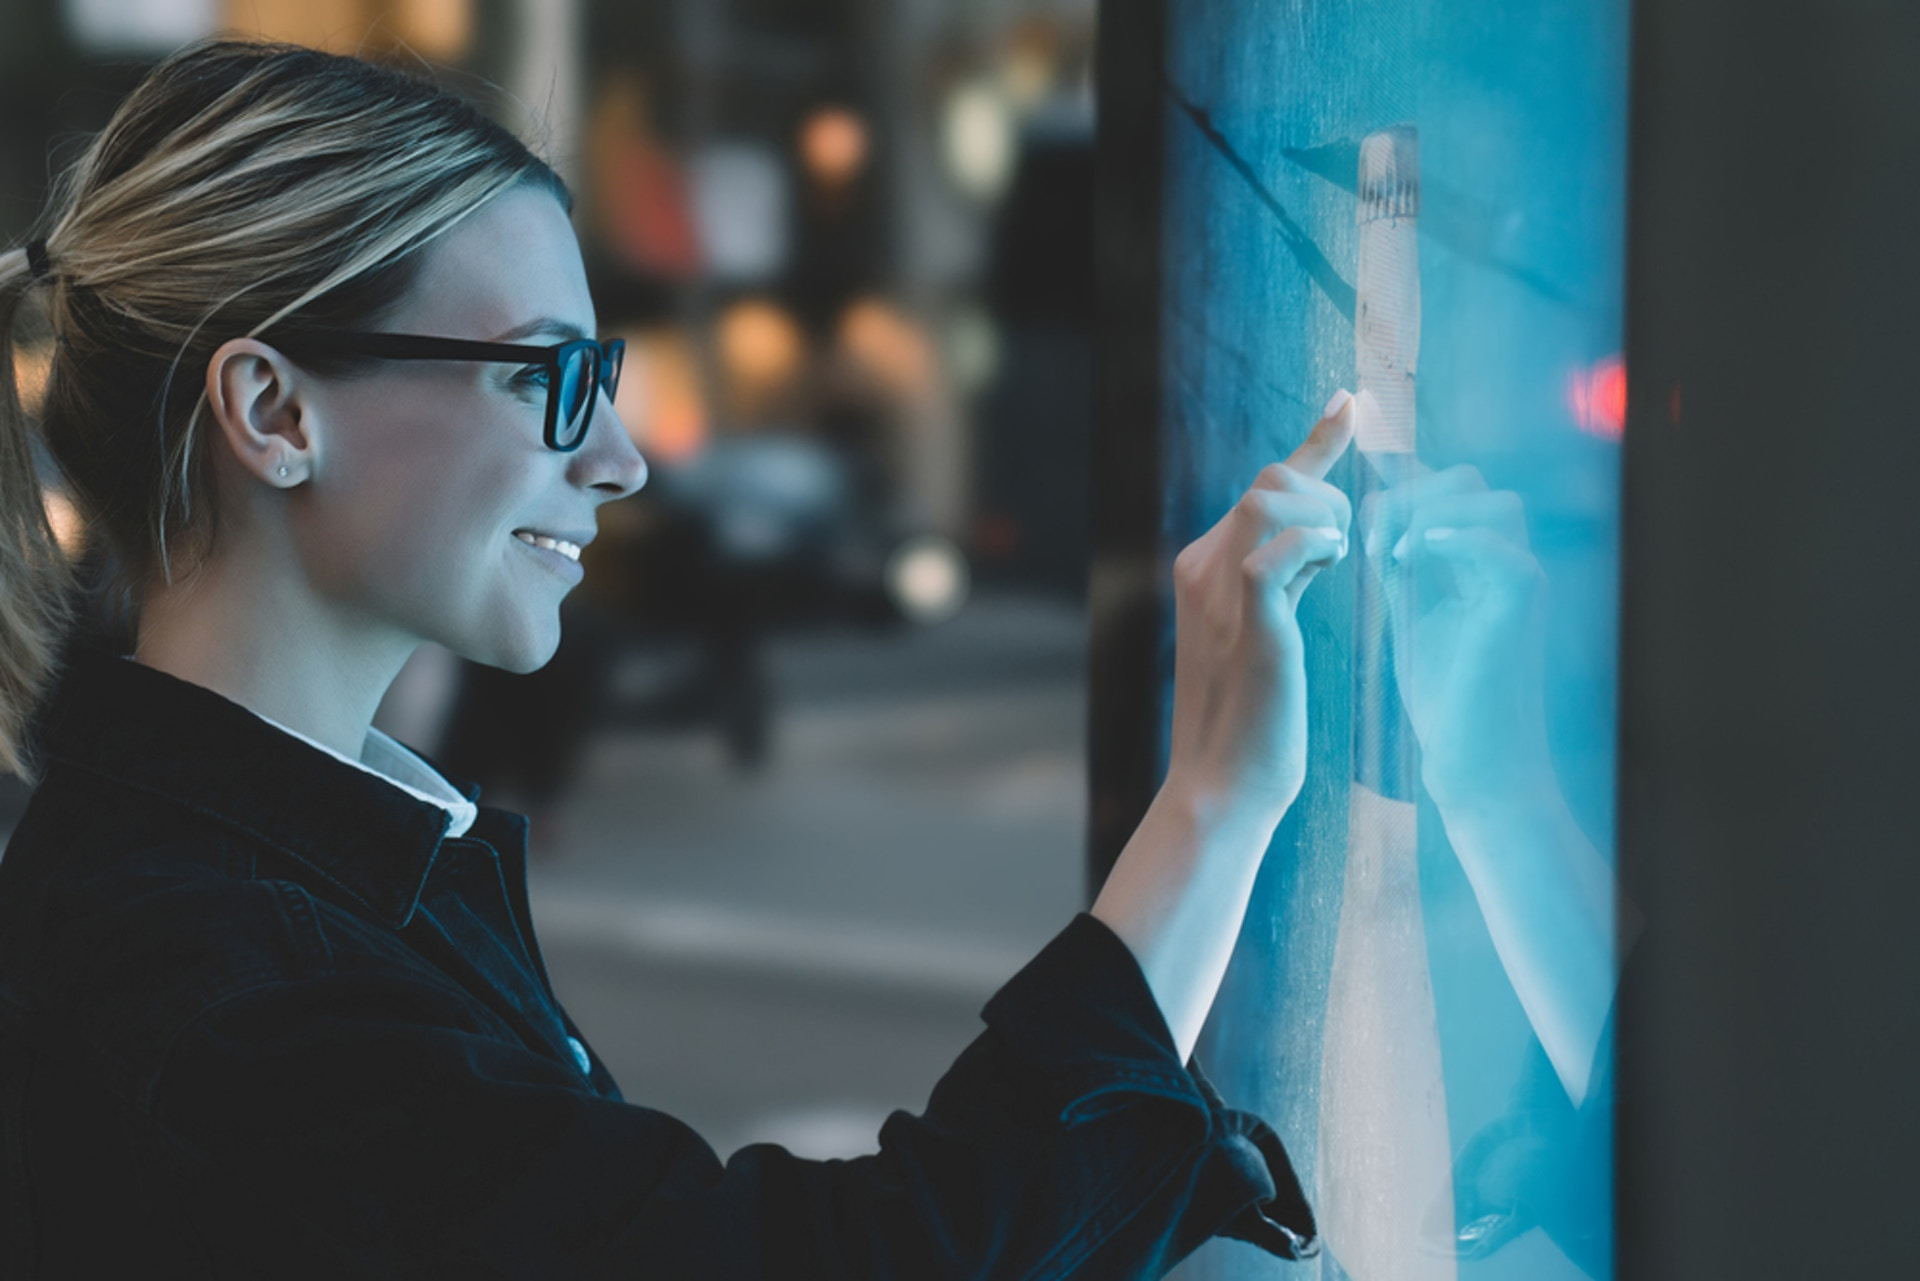 Smiling business woman standing in front of a large touch screen, manipulating data.